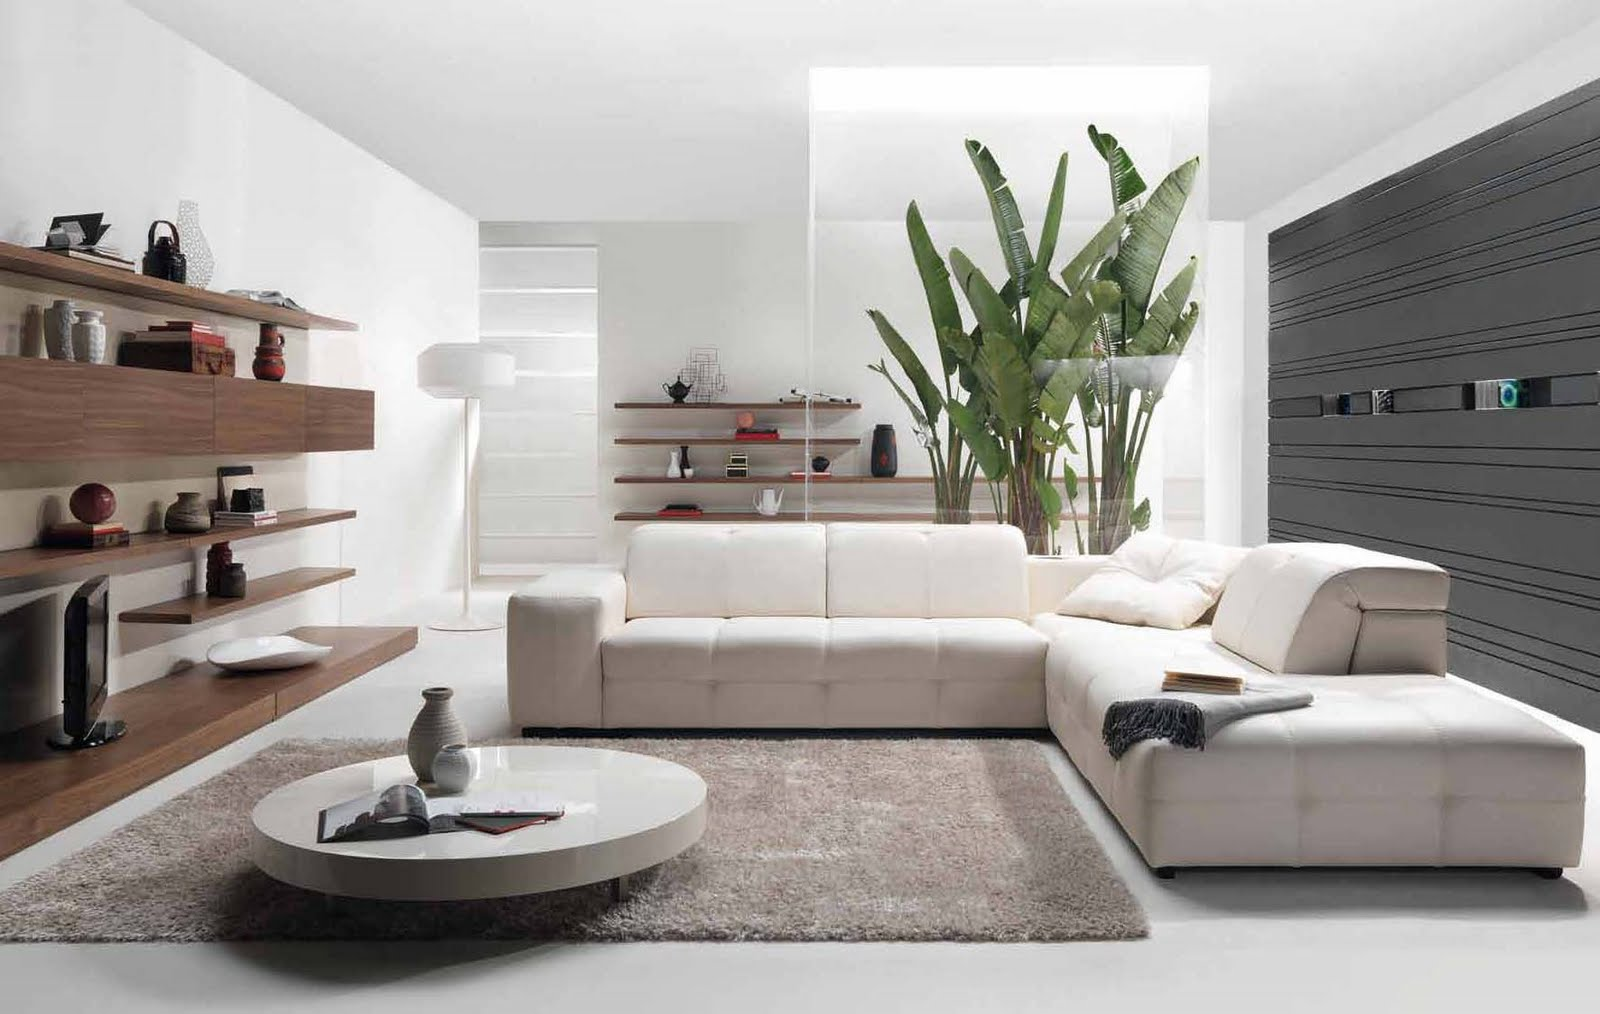 Future house design modern living room interior design styles 2010 by natuzzi - Home interior design living room photos ...